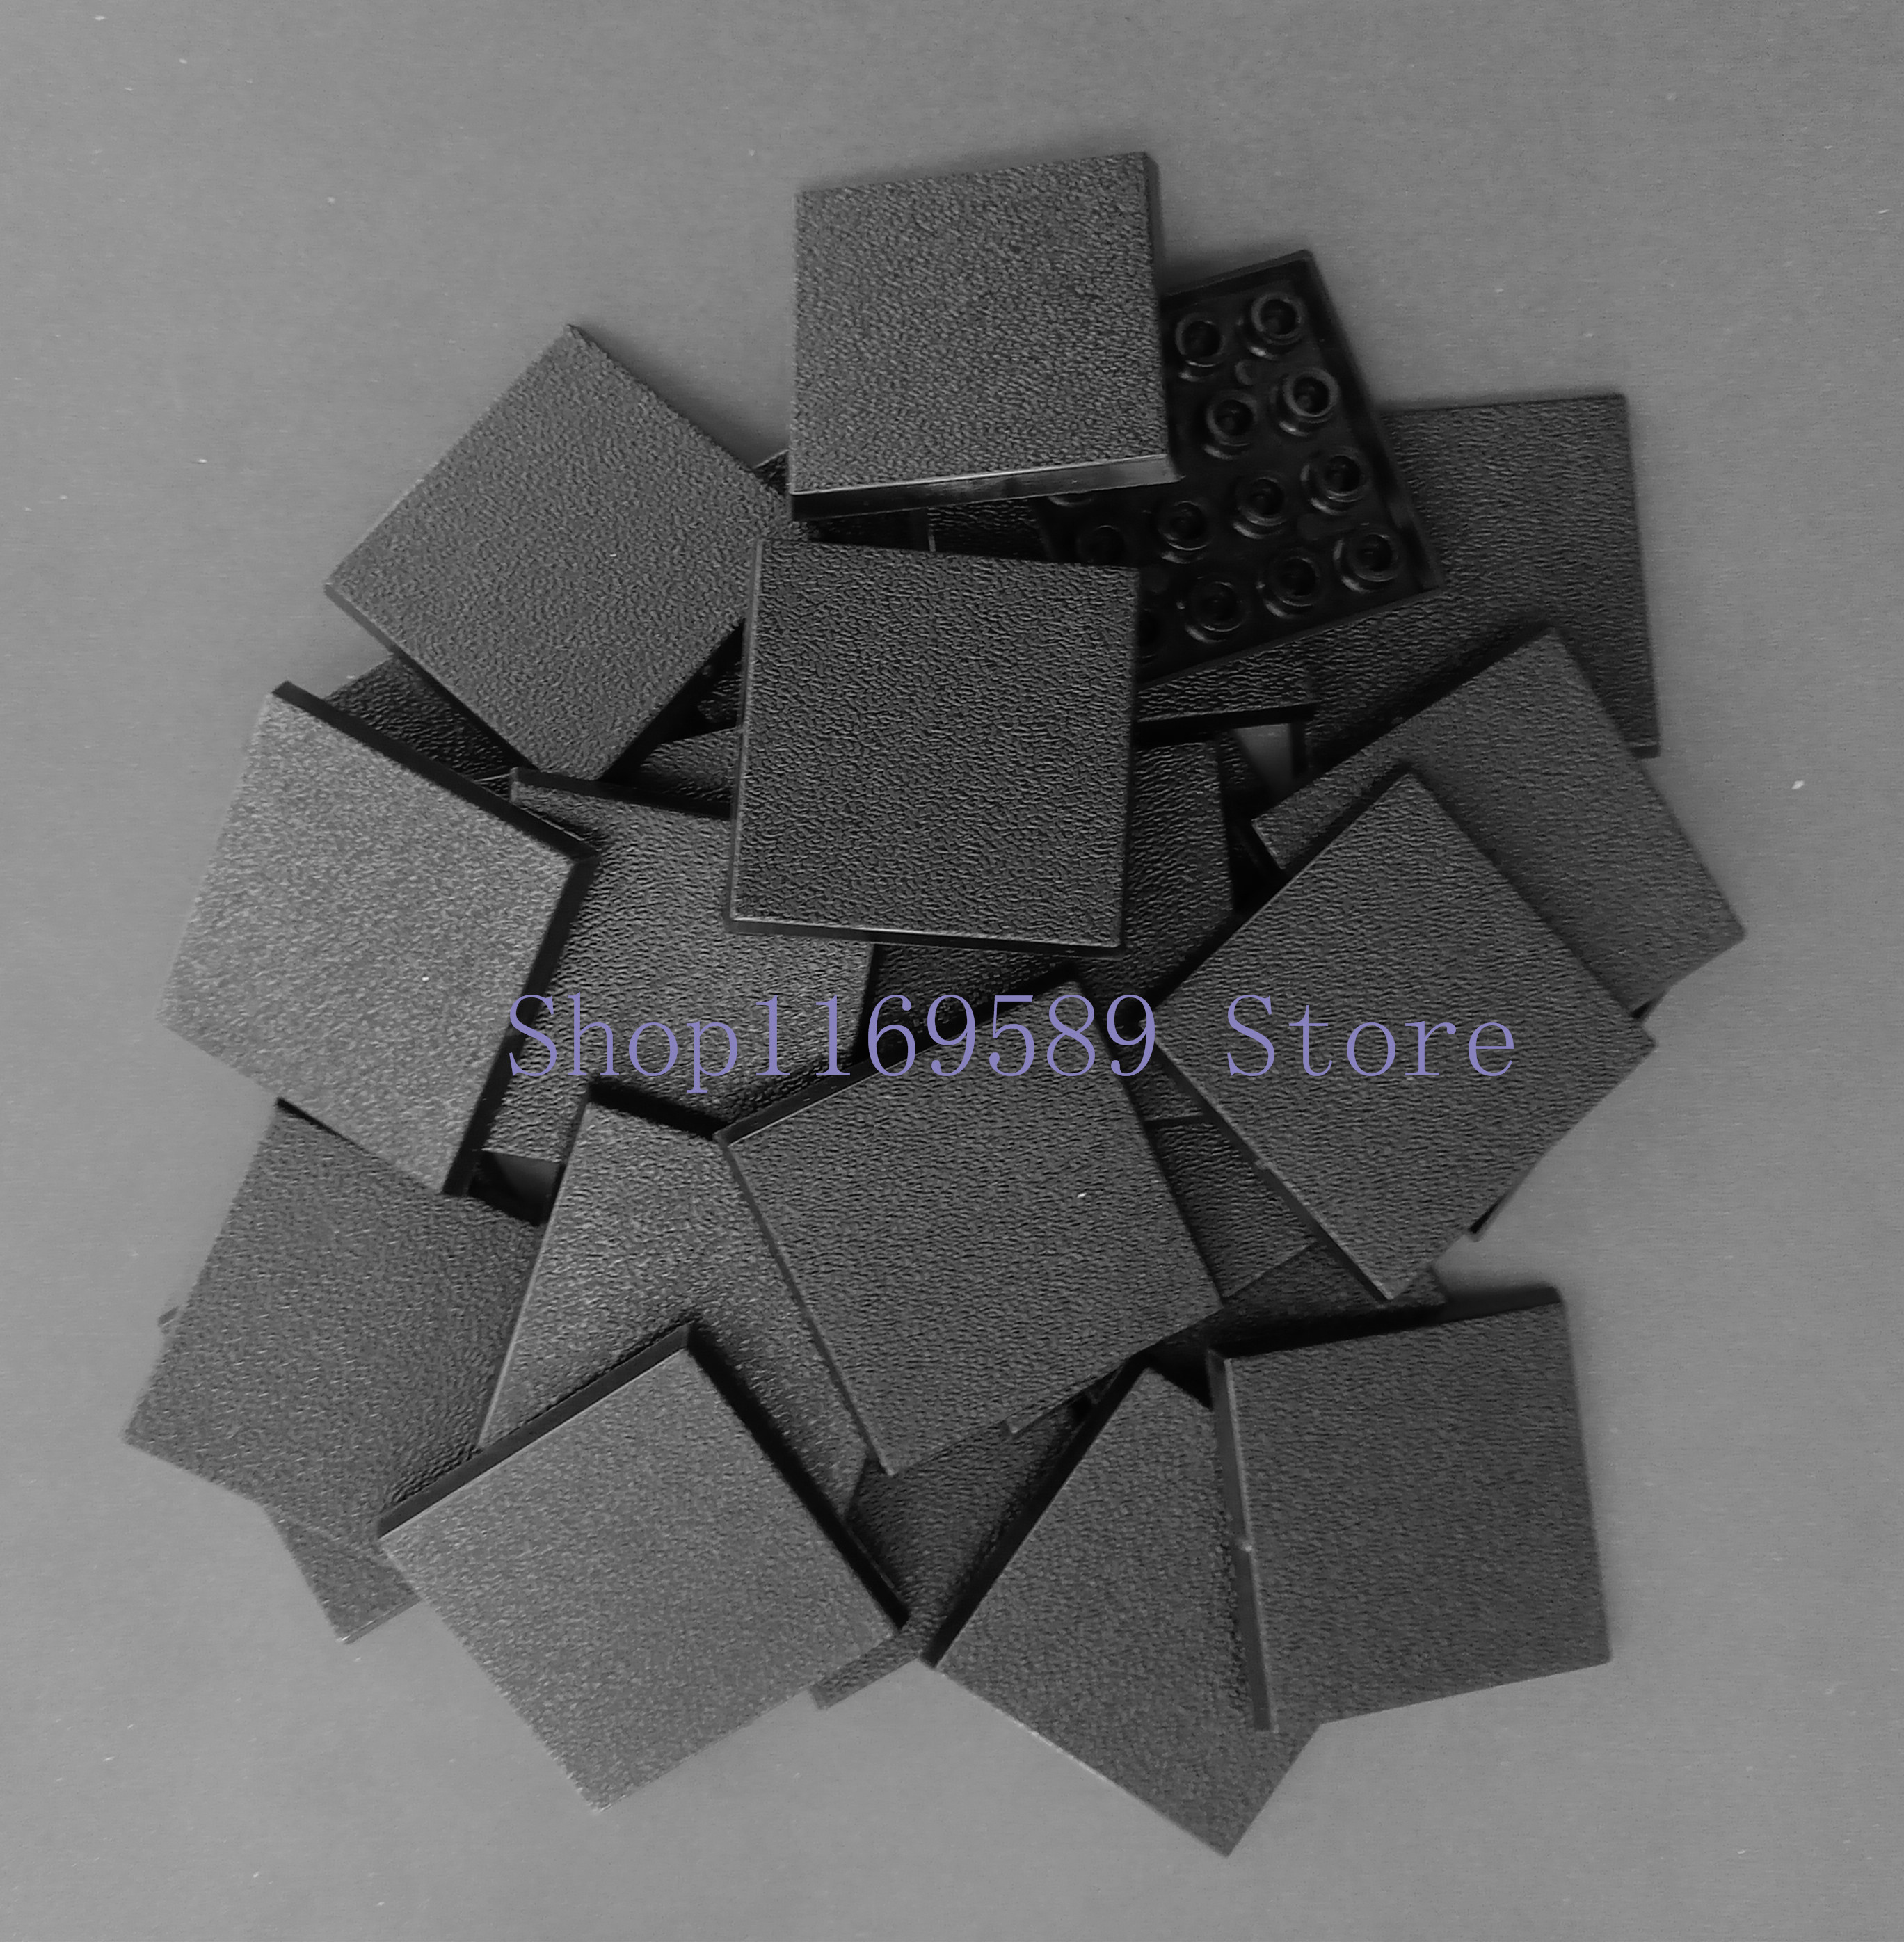 Lot Of 20PCS 40mm Square Bases For Miniature Wargames Table Games Model Accessories    - AliExpress